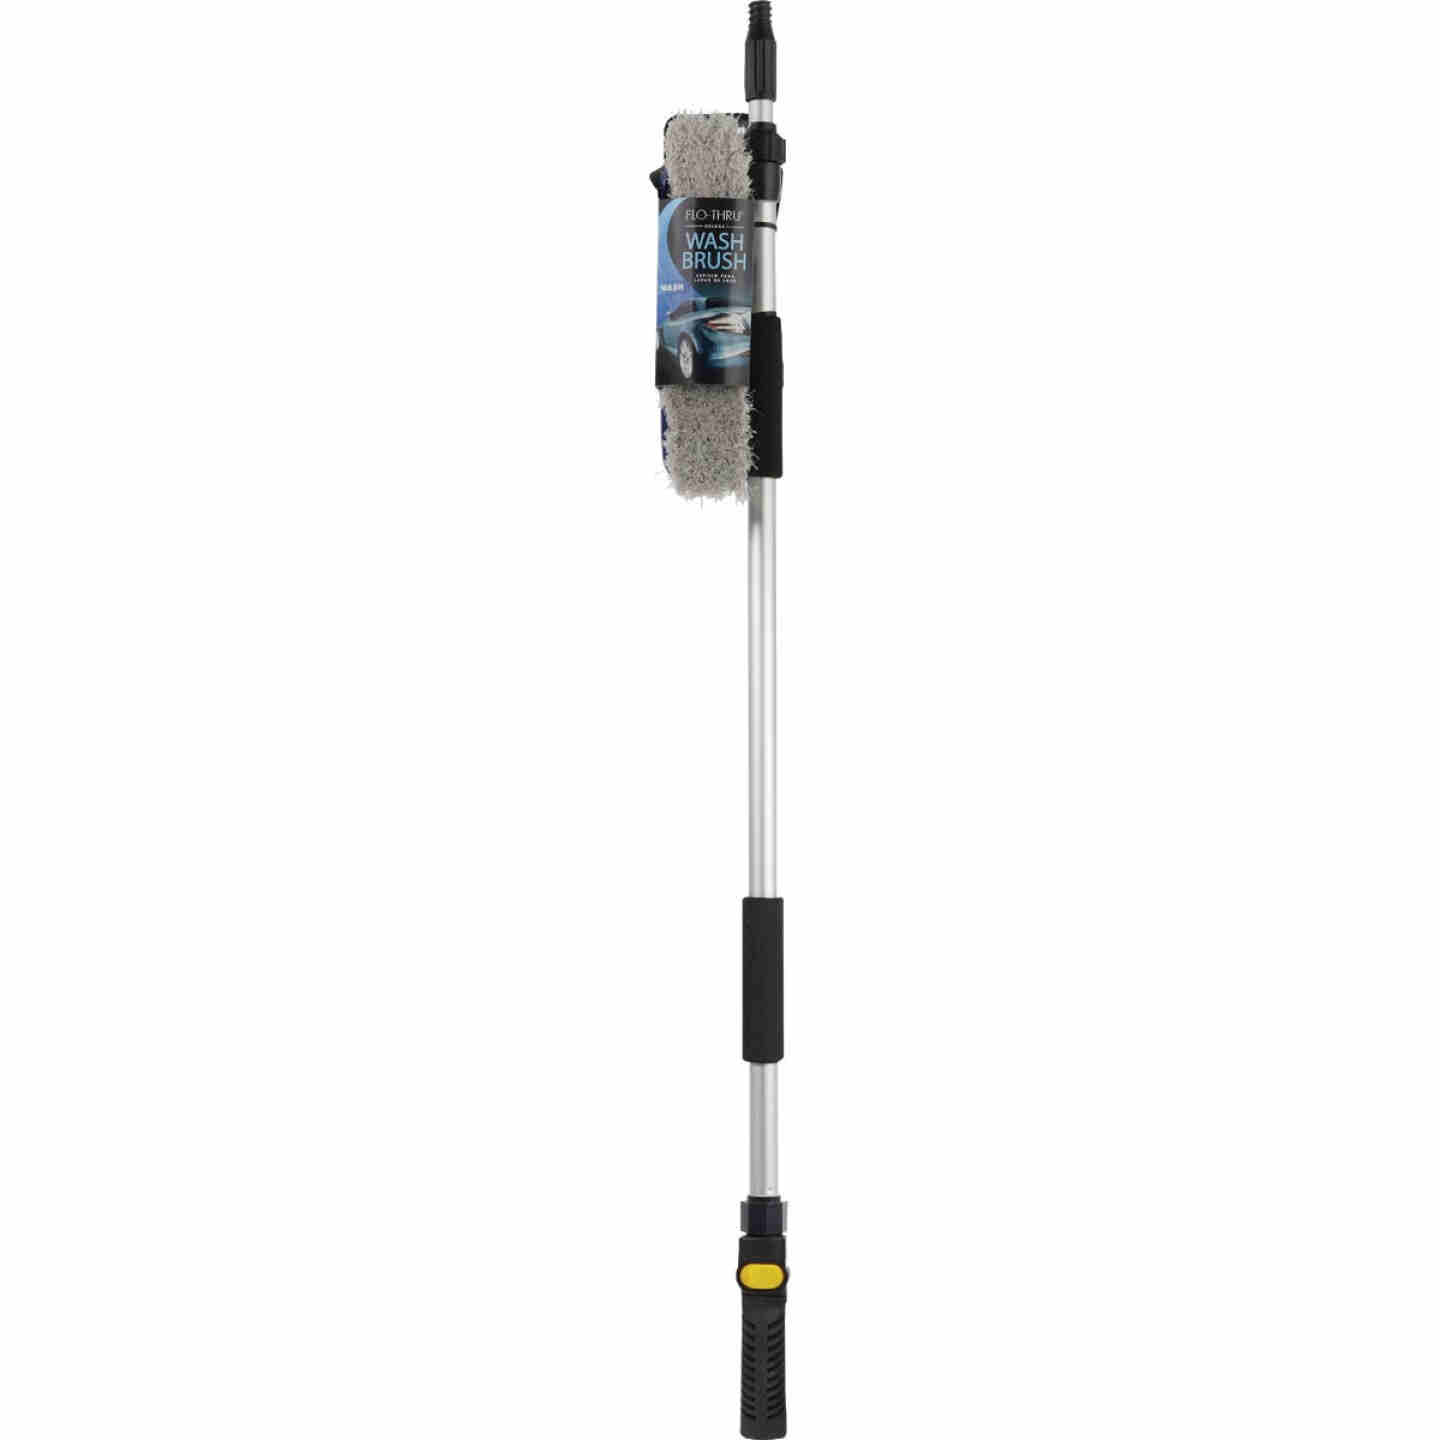 Viking 10 In. Deluxe Flo-Thru Wash Brush with 40 In. to 66 In. Telescoping Handle Image 2